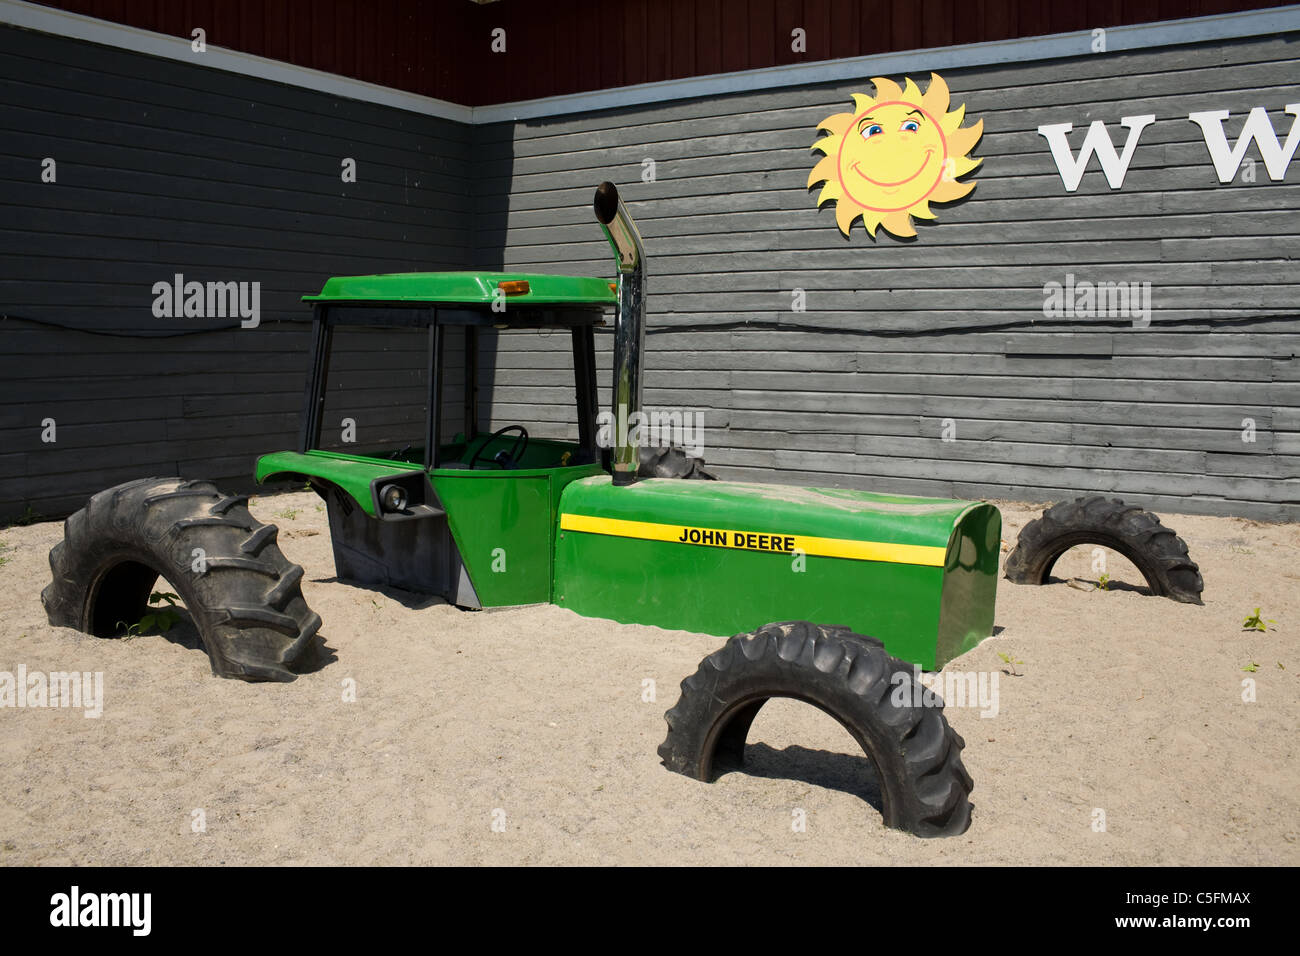 Humorous tractor decoration at Schoharie County fairgrounds, Cobleskill, New York State, USA - Stock Image